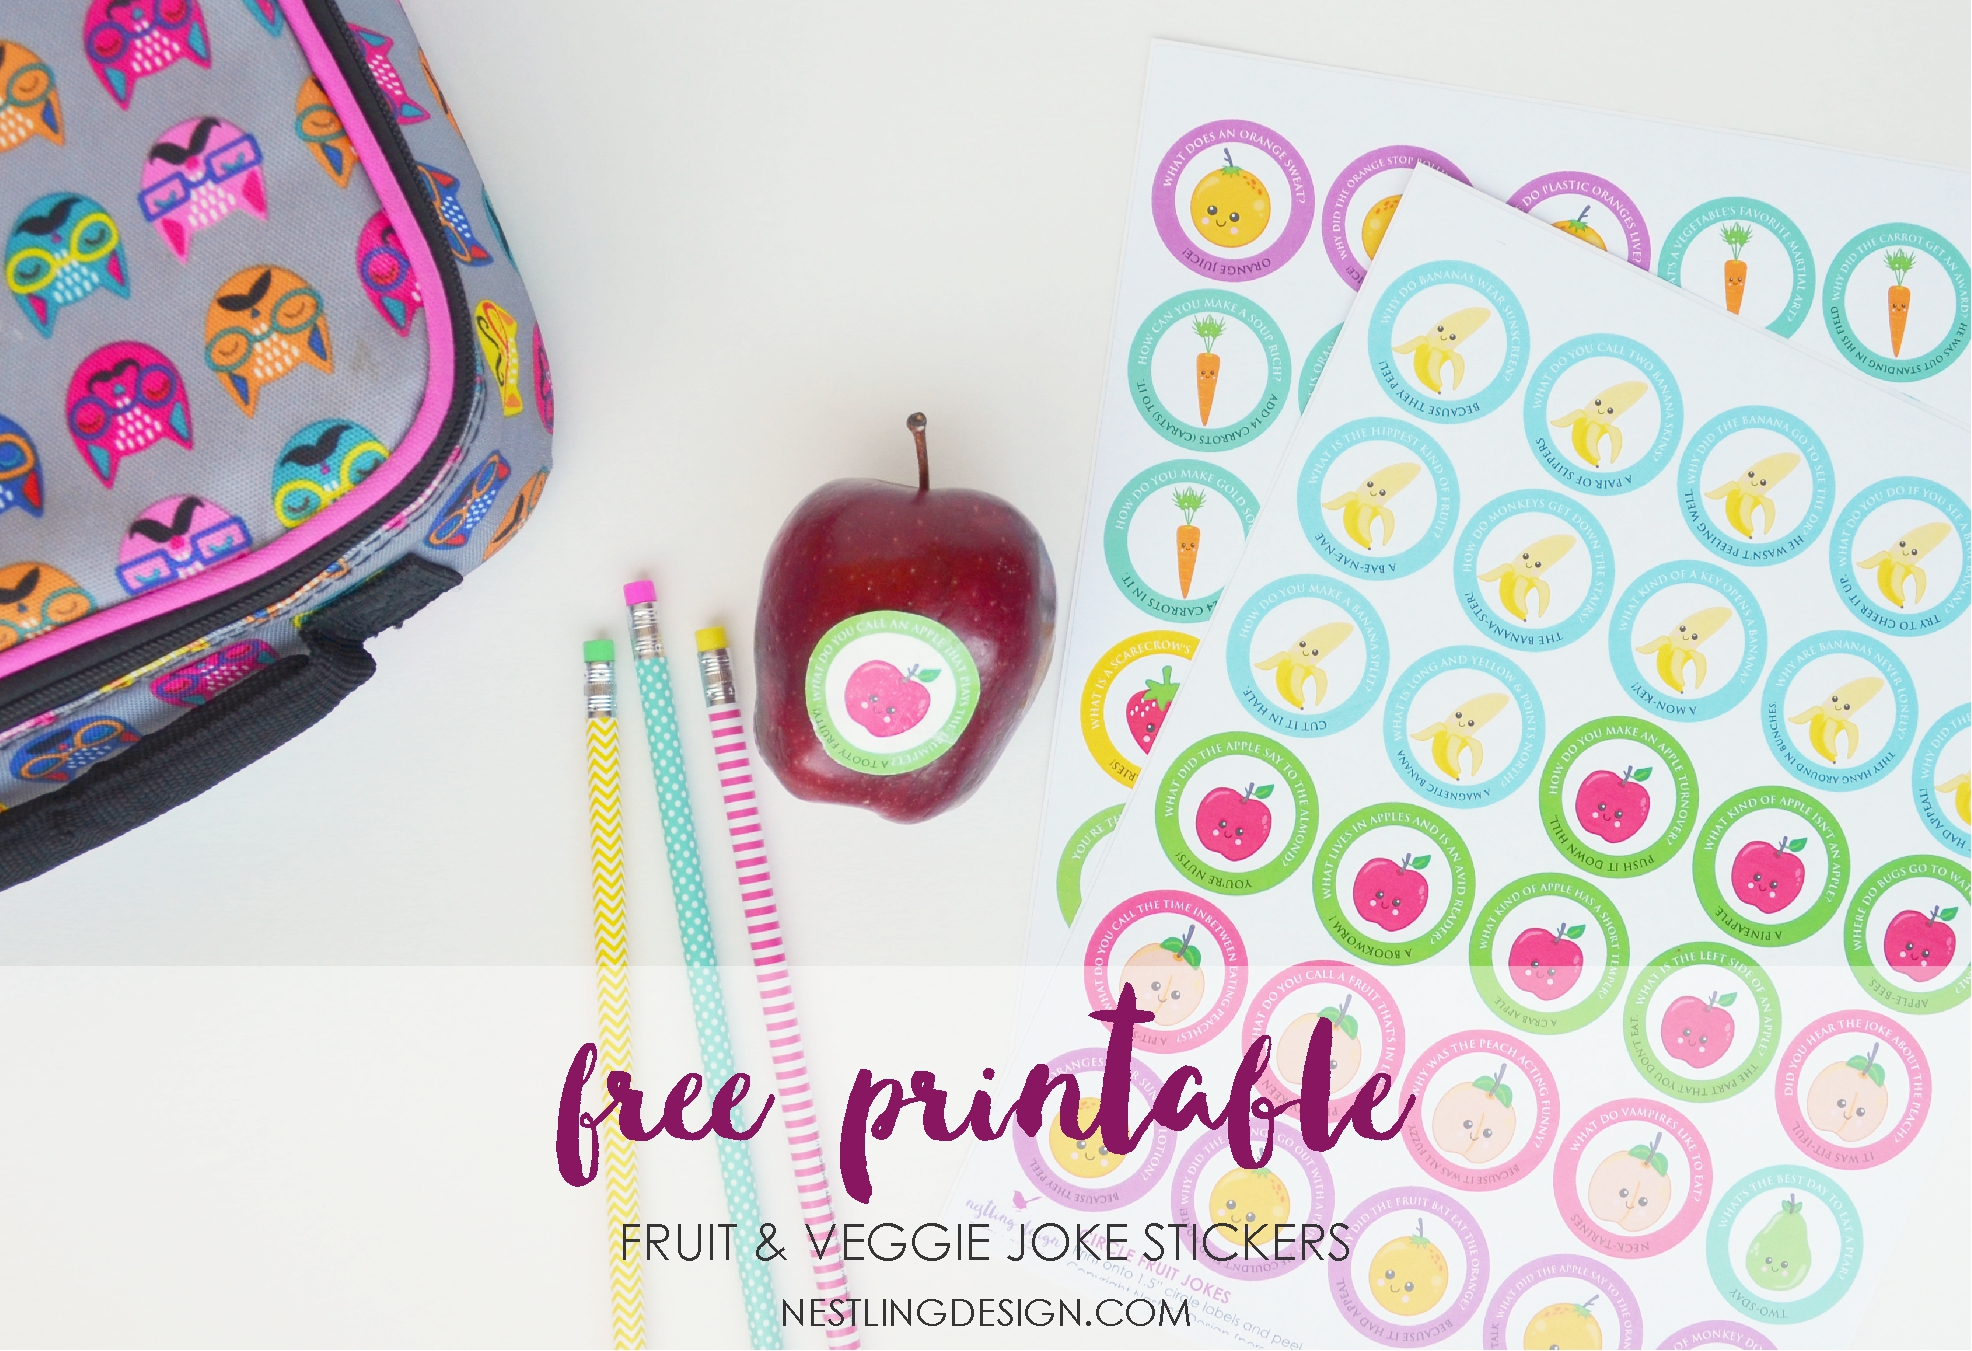 Nestling Design | Free Printable Joke Stickers